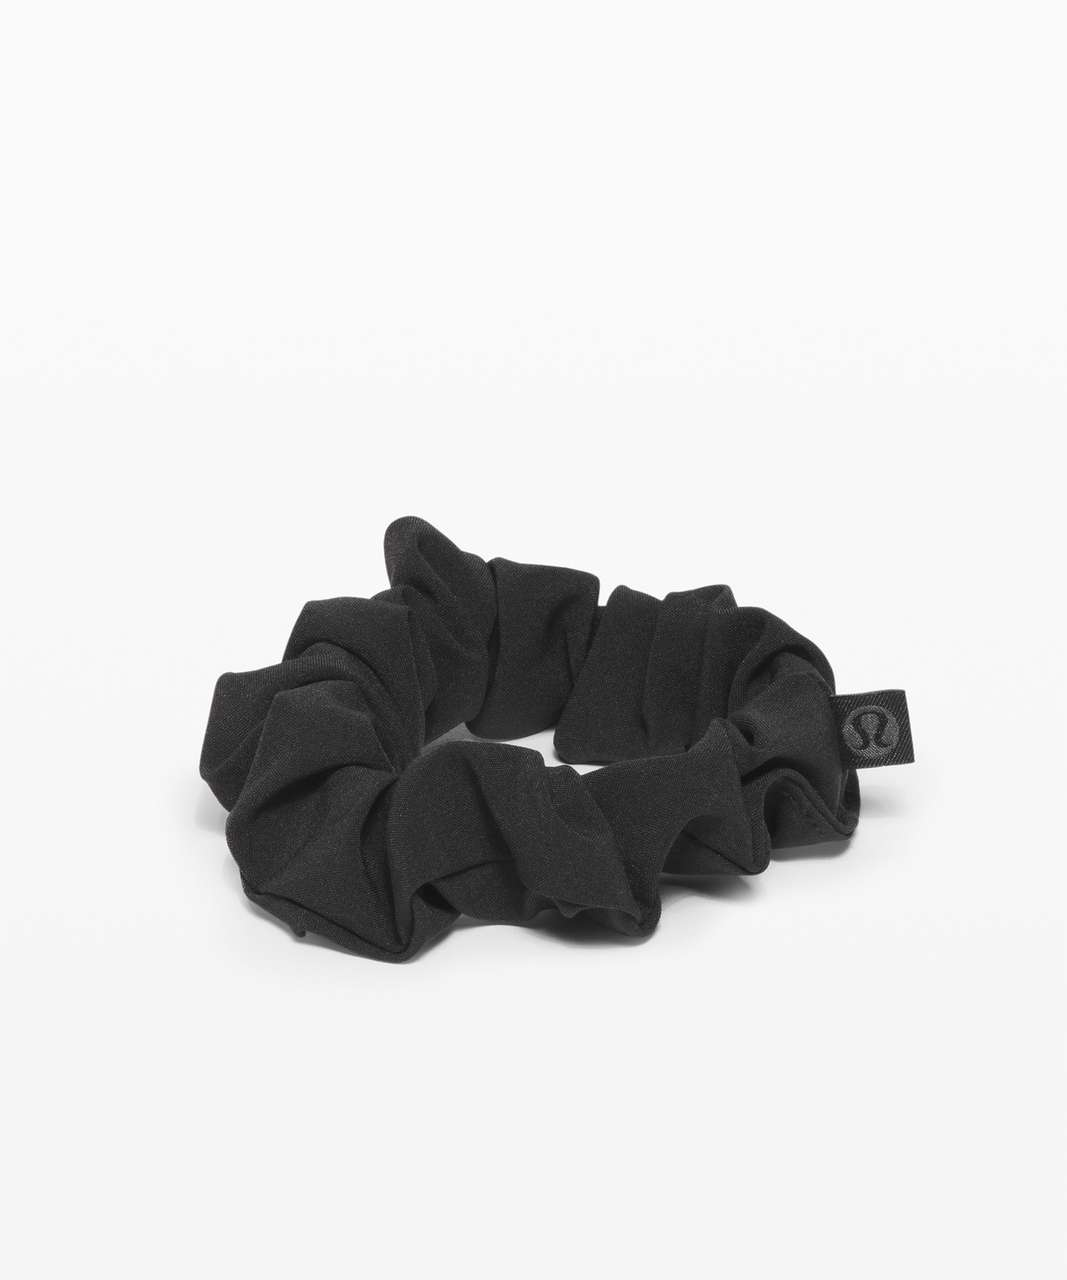 Lululemon Uplifting Scrunchie - Black